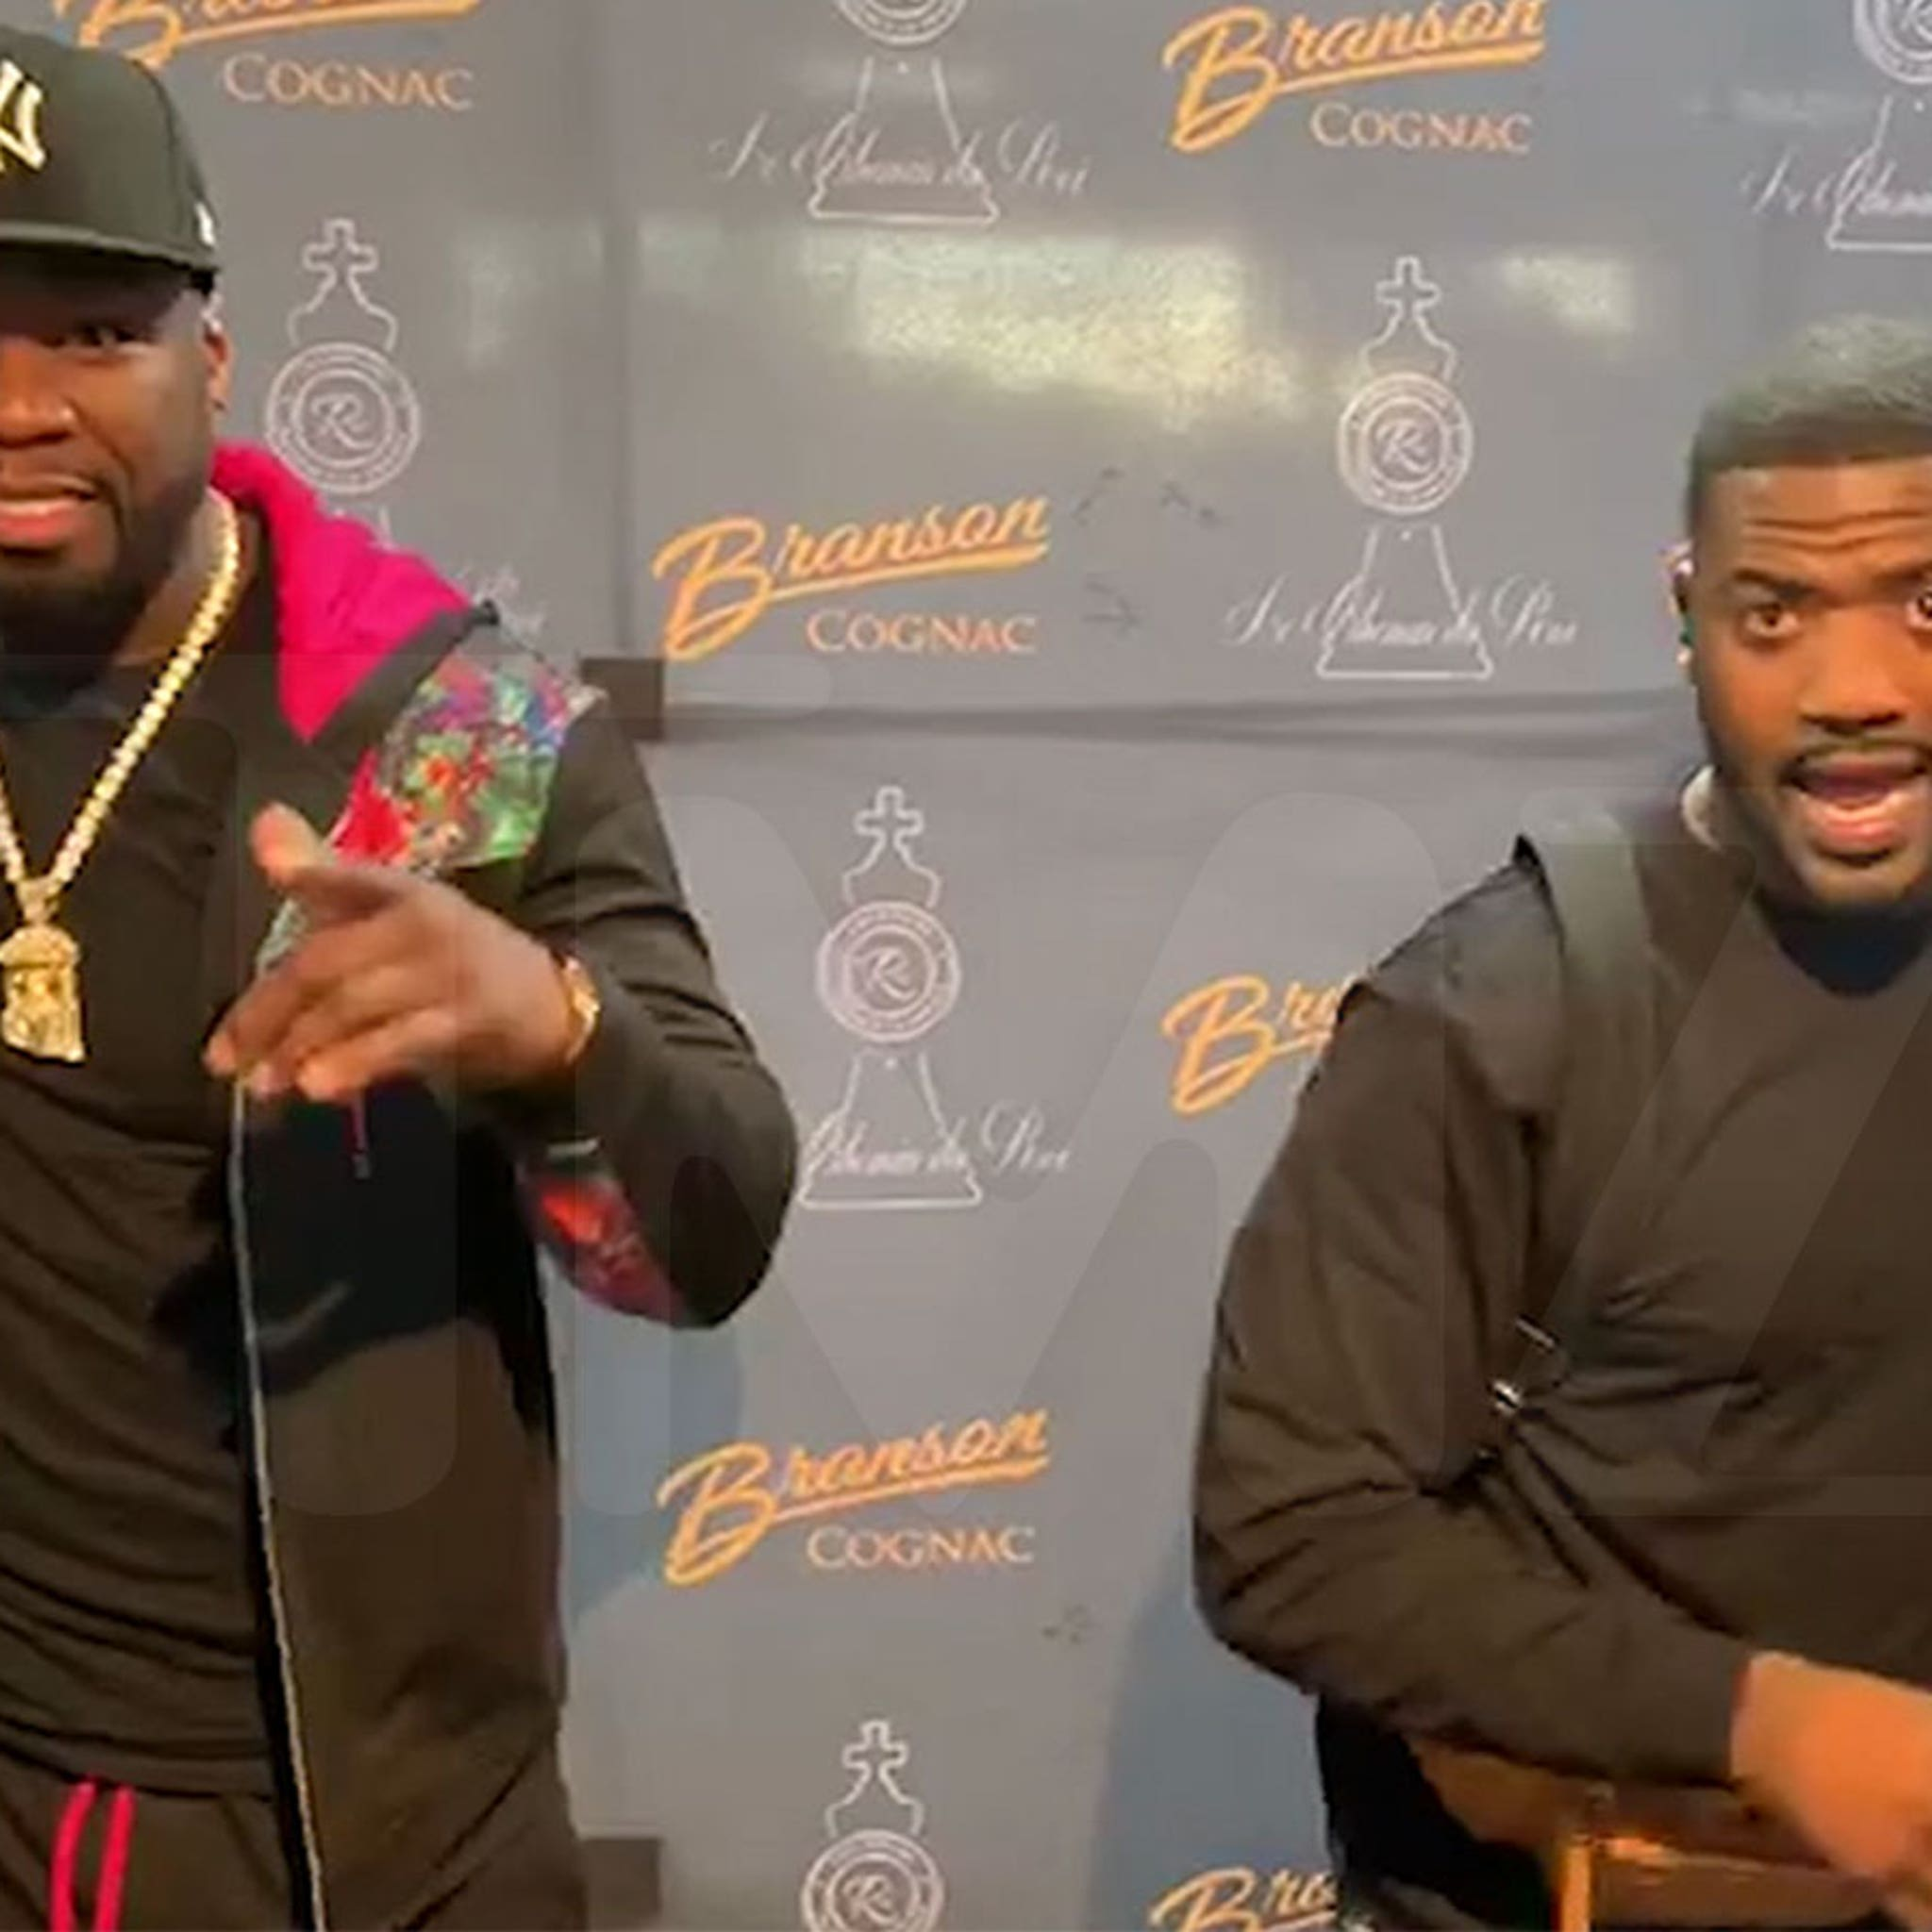 Ray J Shocks 50 Cent by Becoming Human Billboard at Promo Event